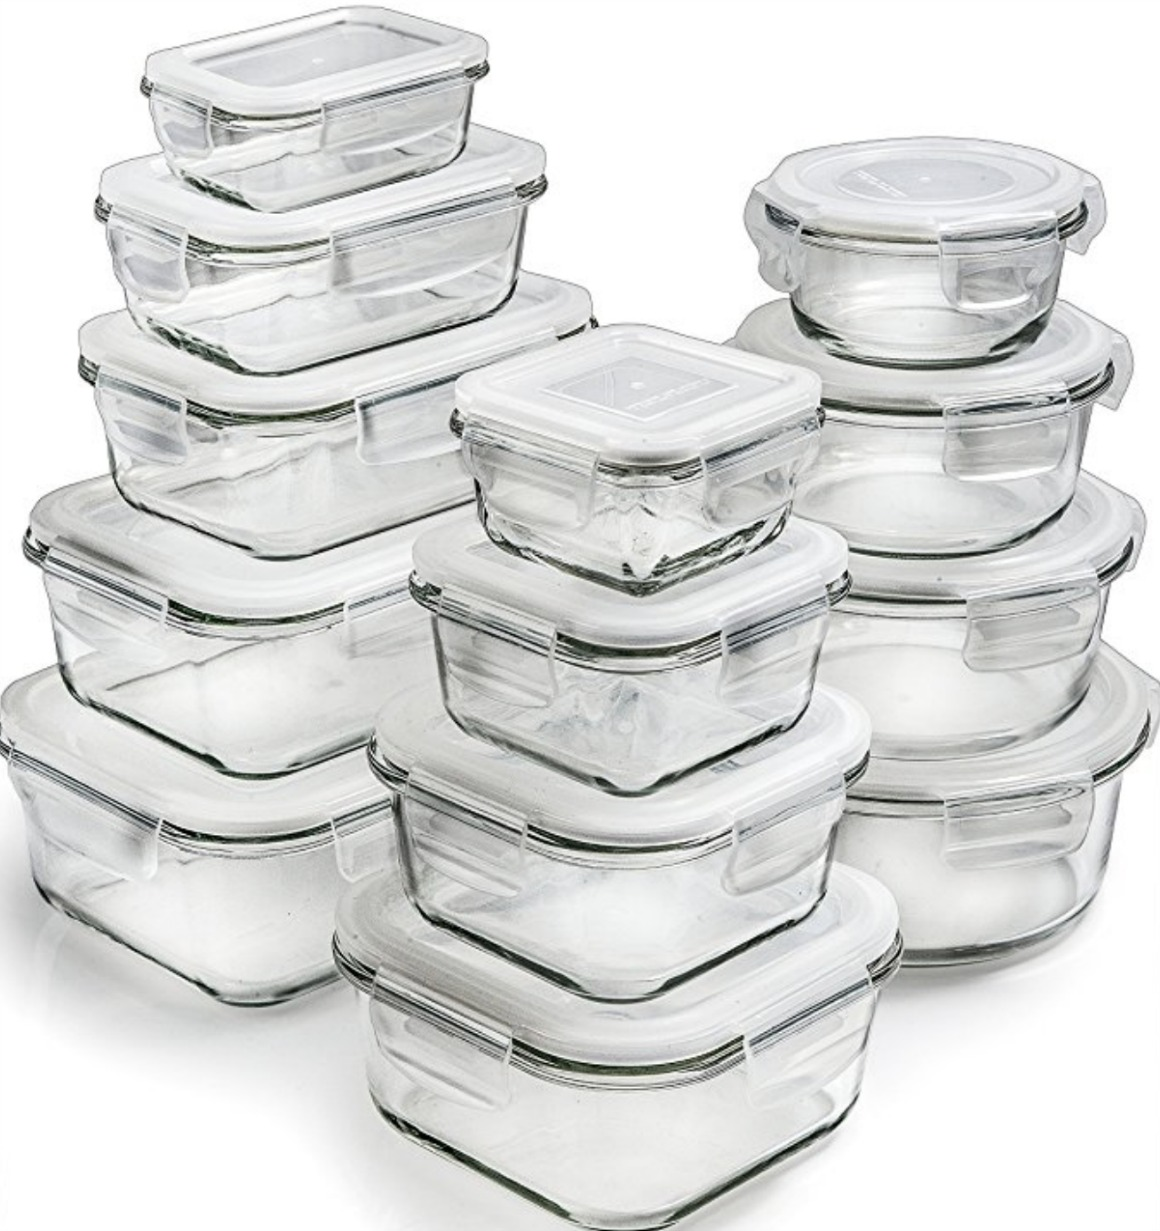 Favorite Home Purchases- Basically My Wedding Registry